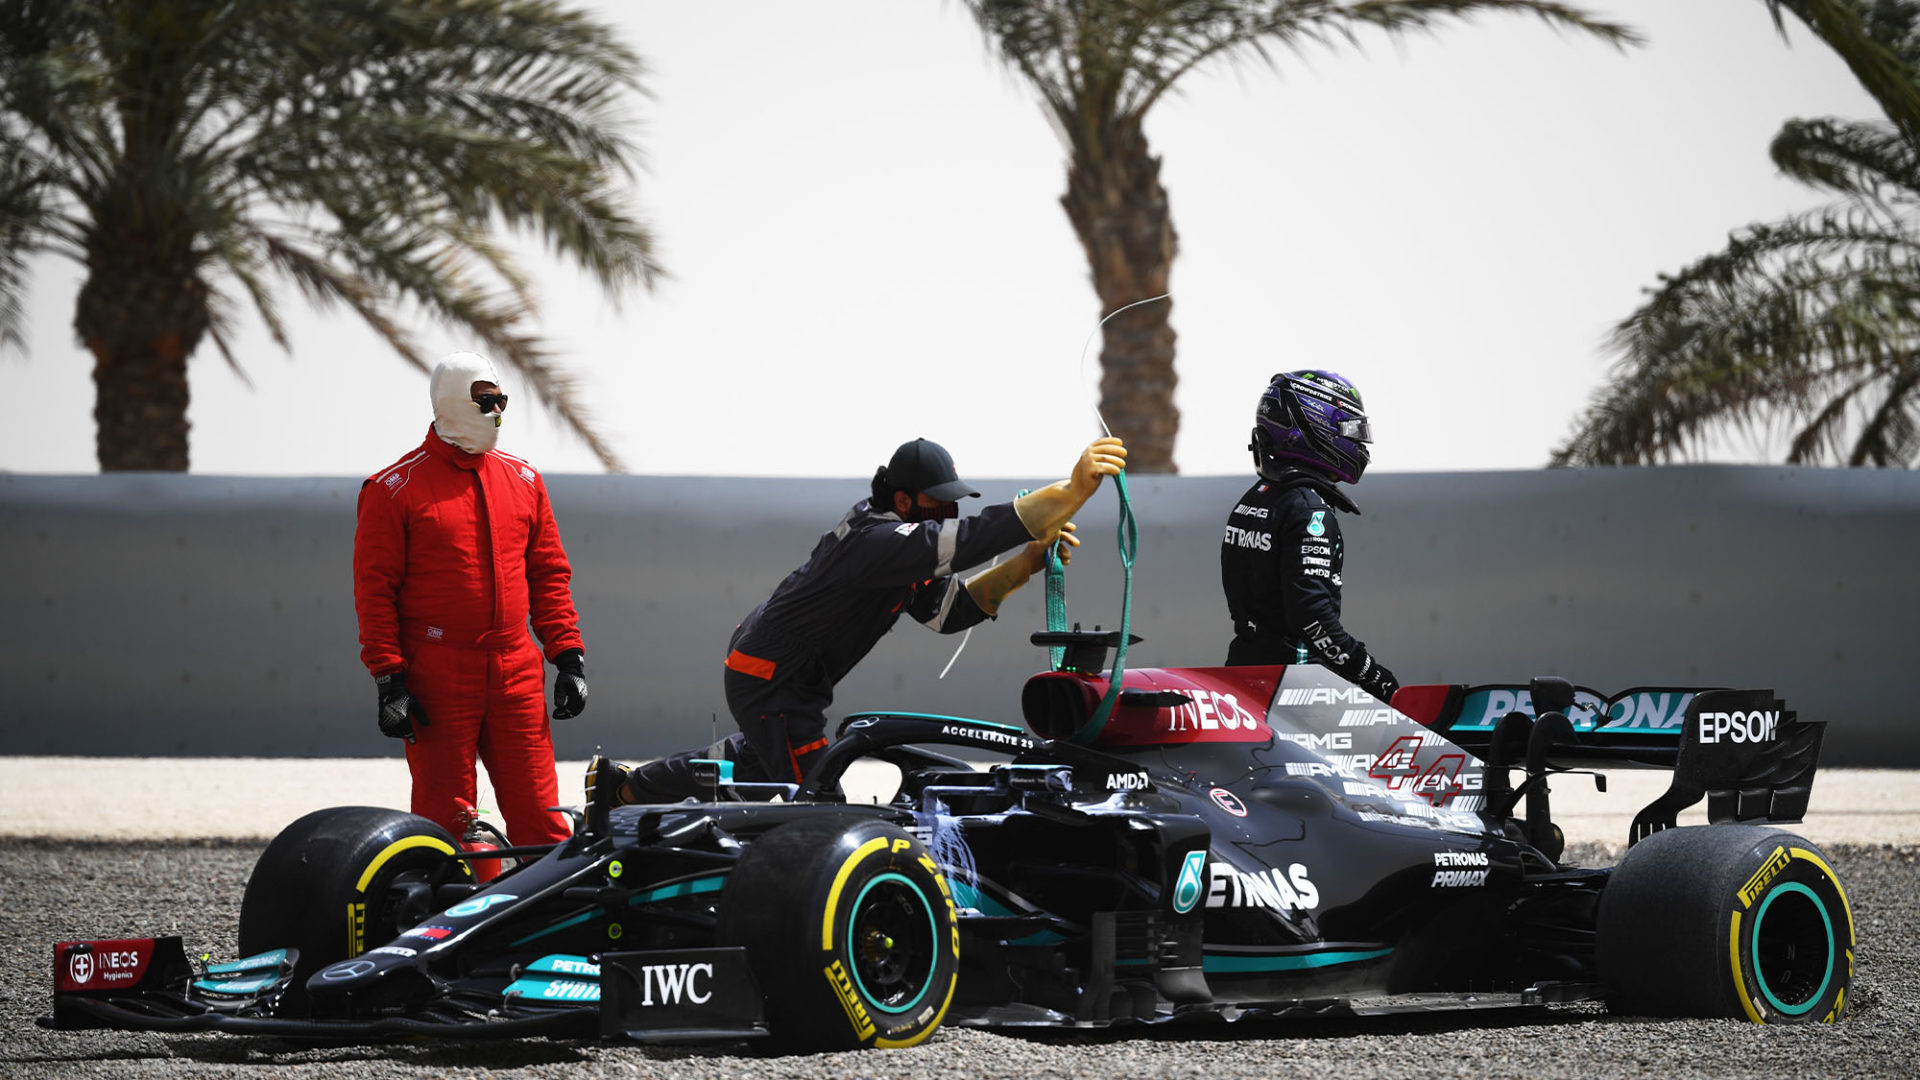 Mercedes Lost Crucial Time When Hamilton Beached The Car On Day 2